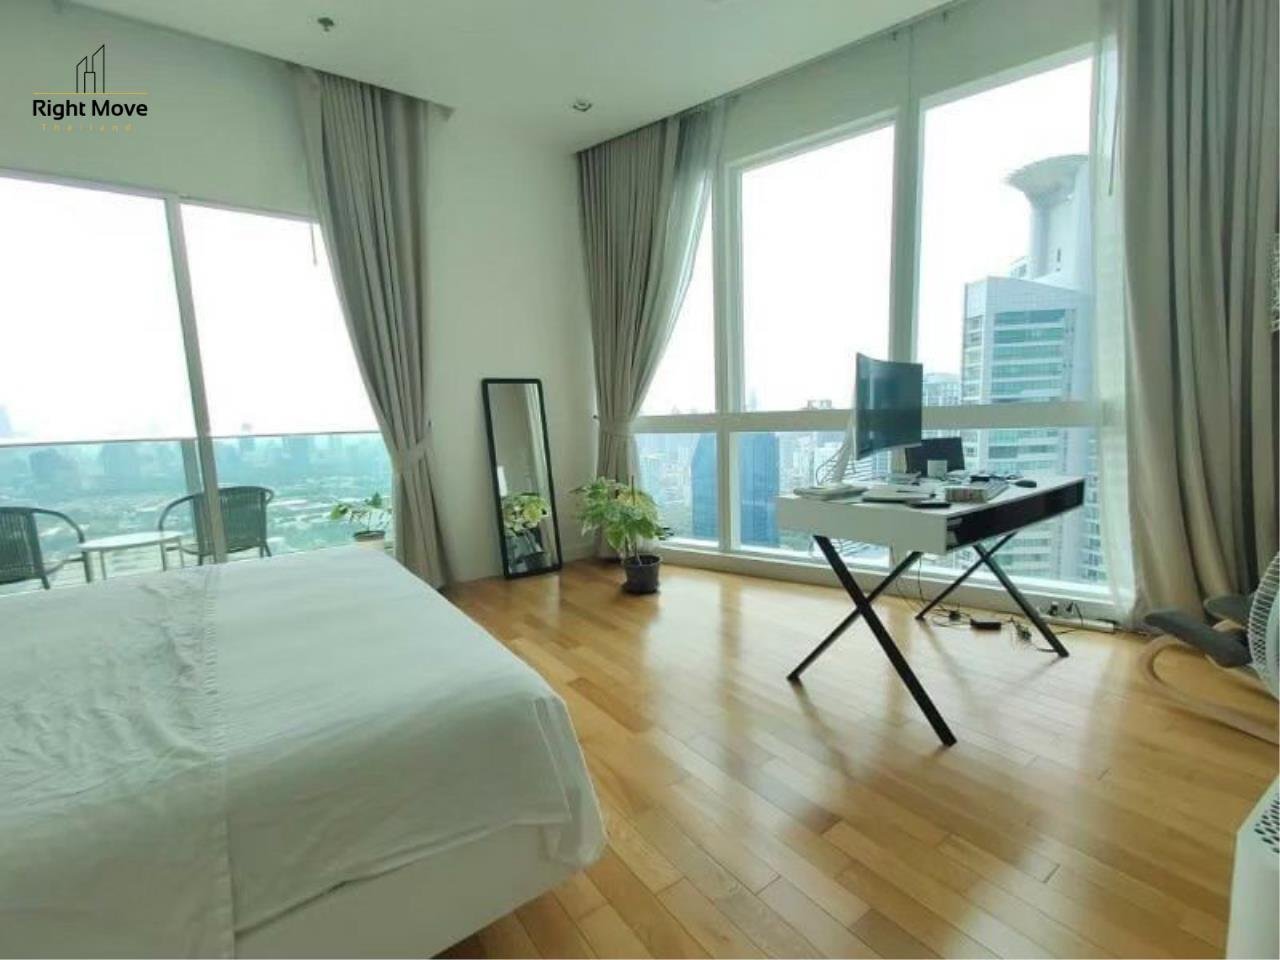 Right Move Thailand Agency's CA4023 Millennium Residence For Rent 120,000 THB -  3 Bedrooms - 193.5 Sqm 5